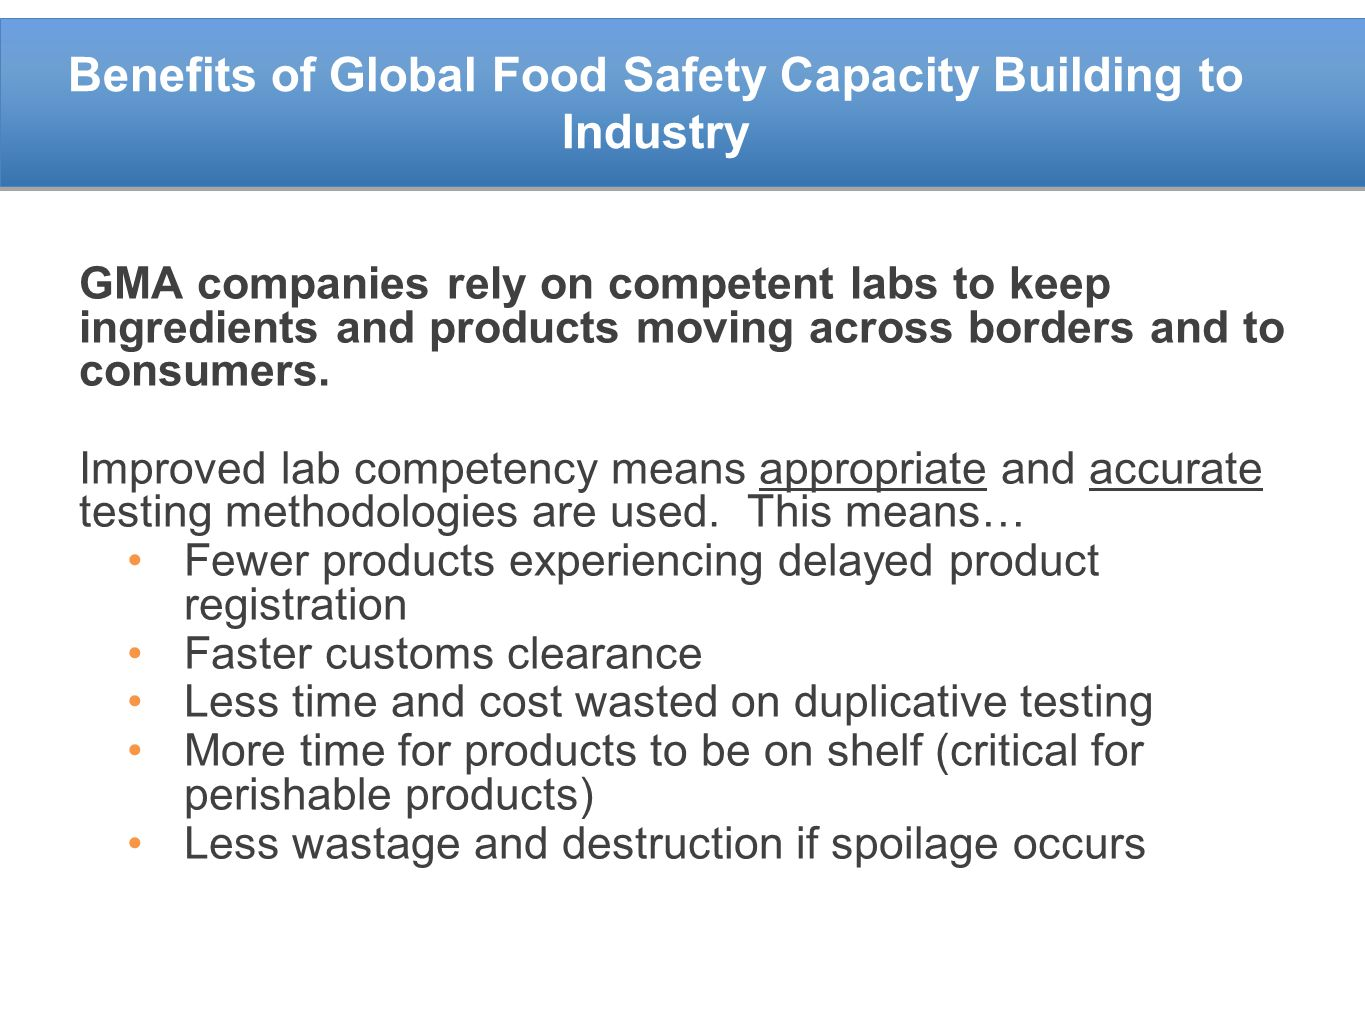 Benefits of Global Food Safety Capacity Building to Industry